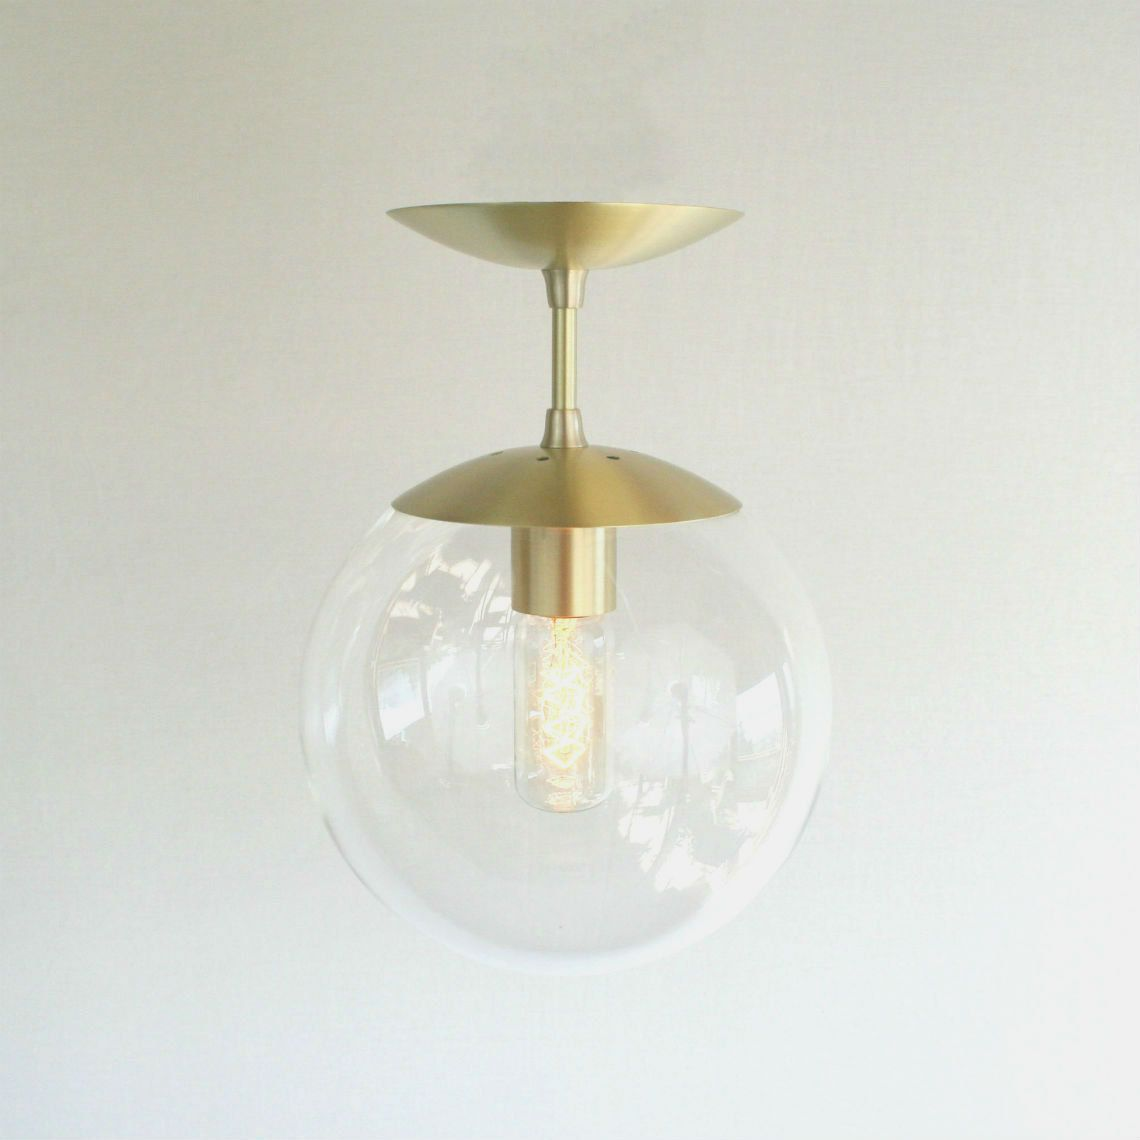 Semi Flush Modern Mid Century Pendant Light Clear 8 Globe The Orbiter Neckless Pendants Were A Staple Of